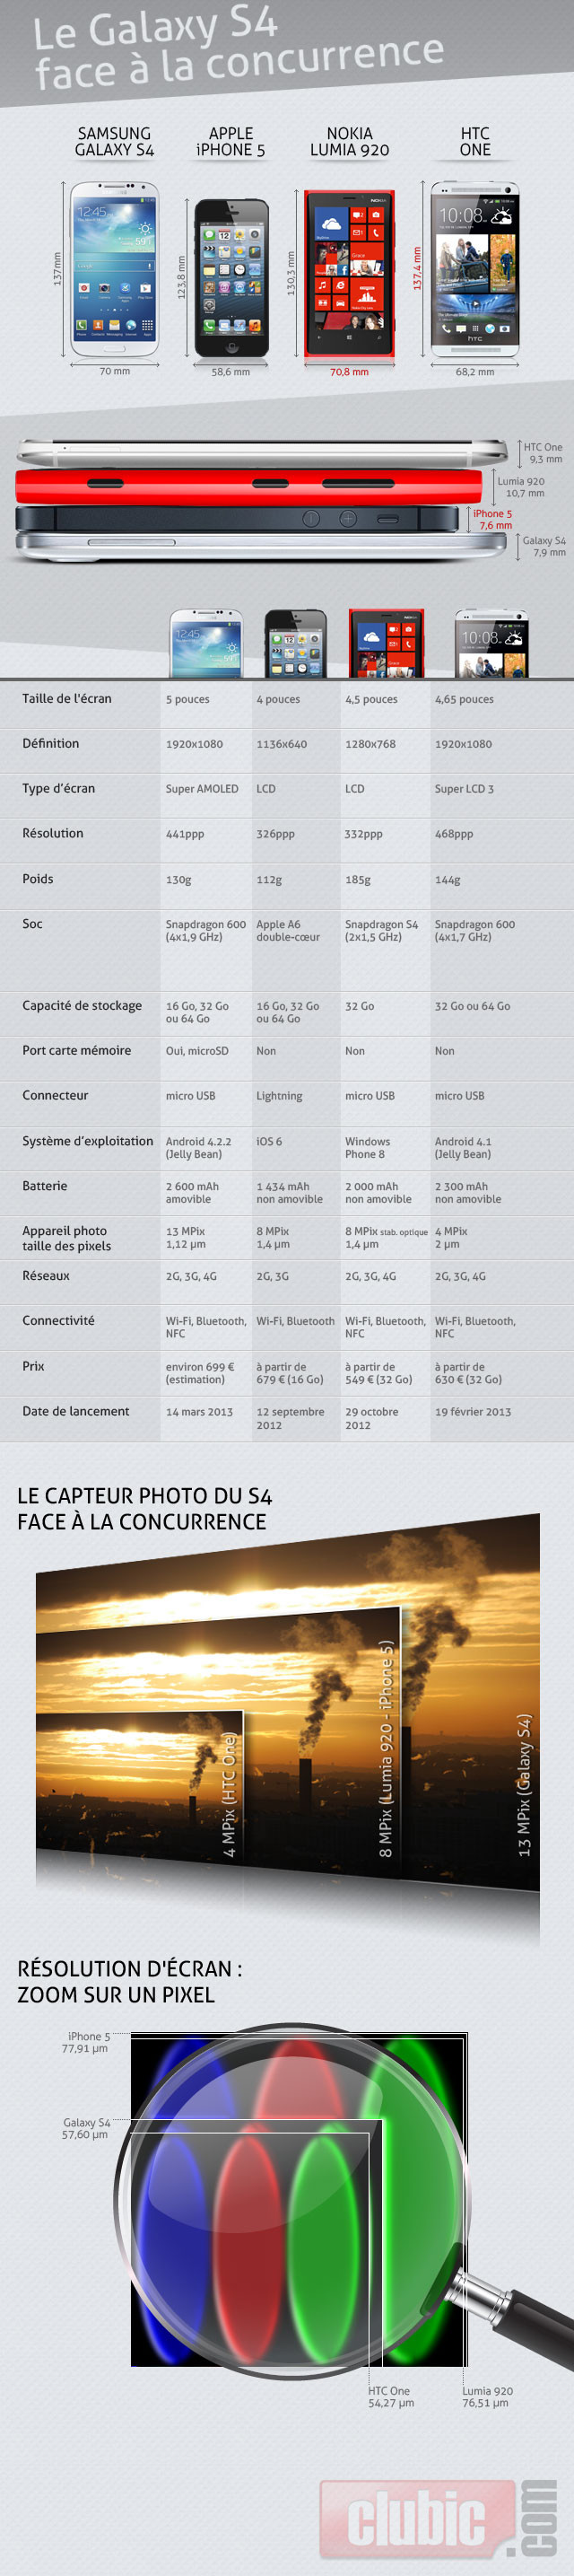 05788406-photo-infographie-galaxy-s4.jpg